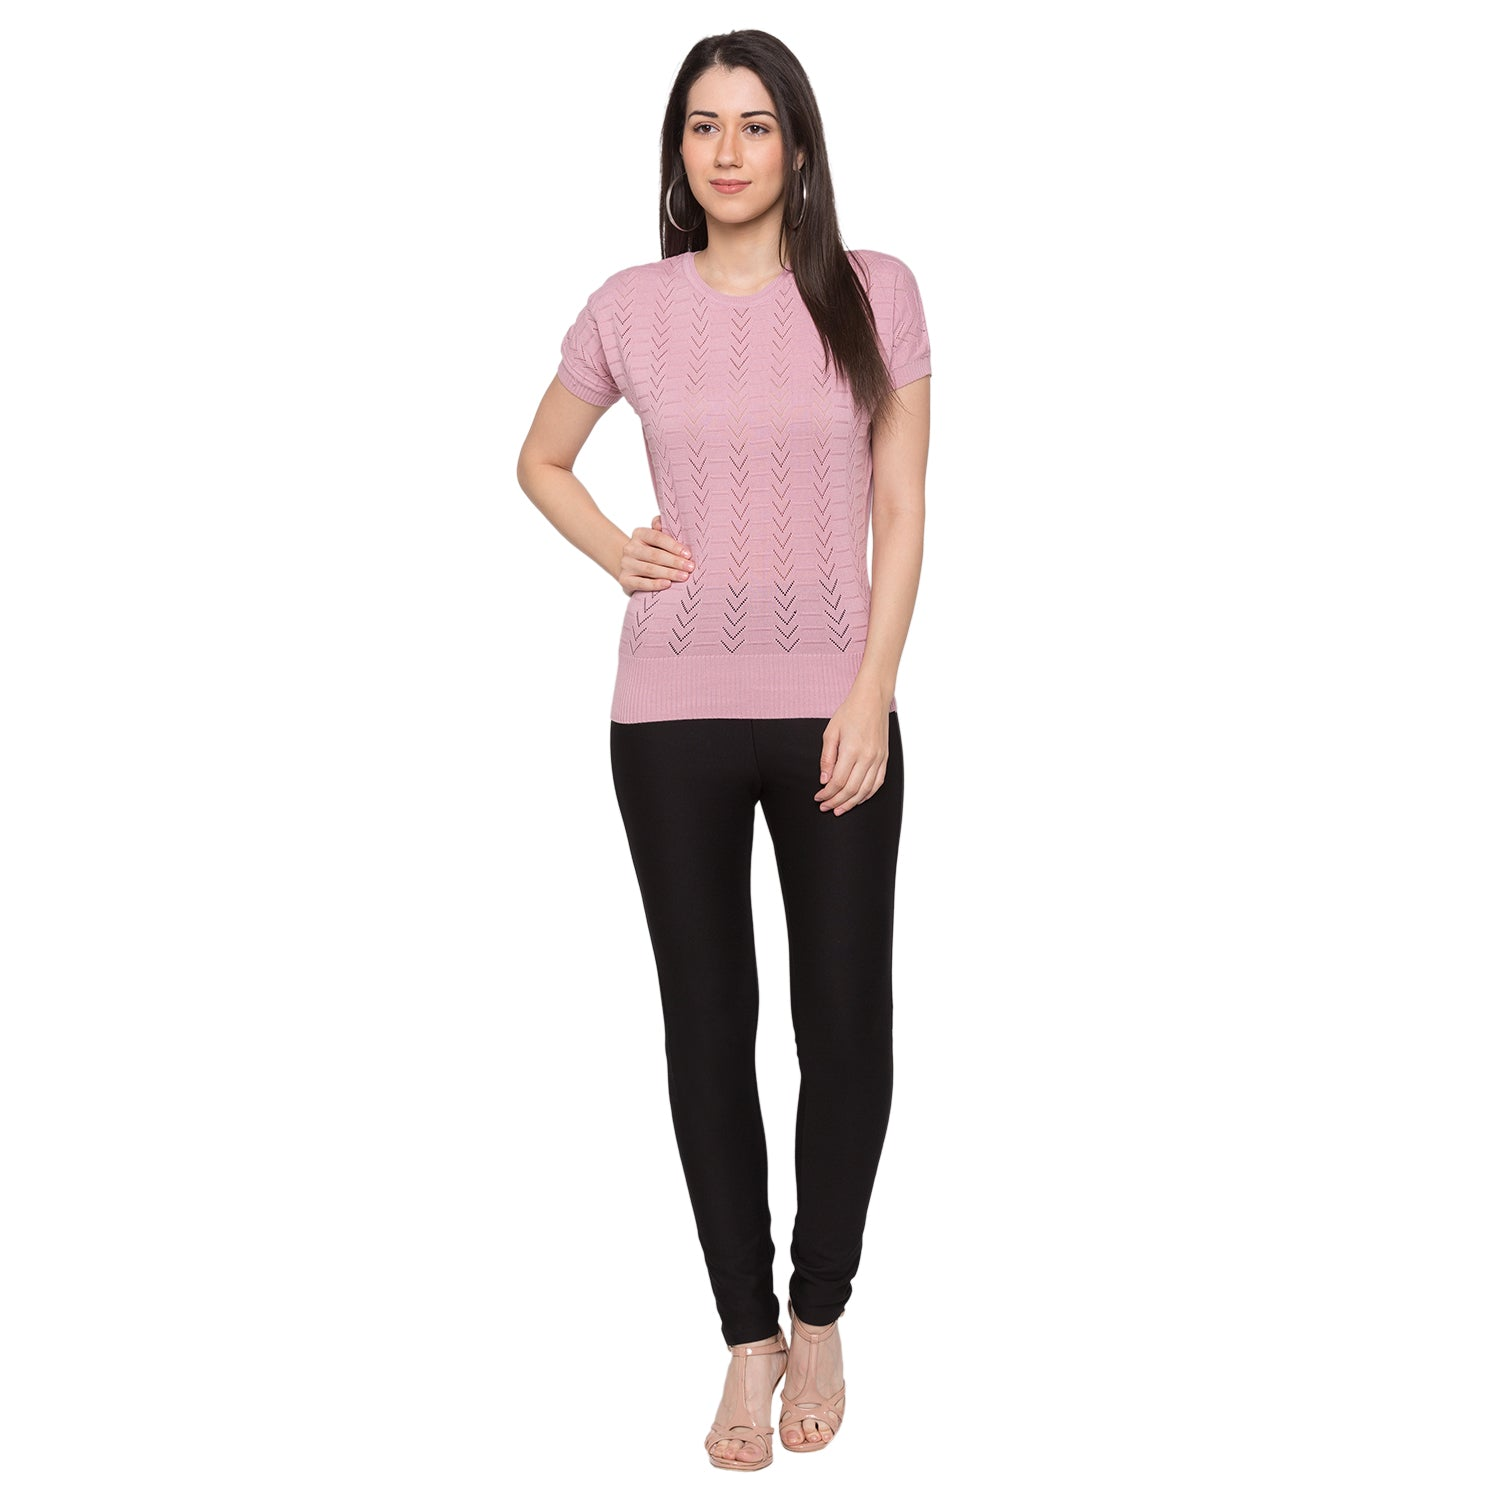 Globus Pink Knitted Top4